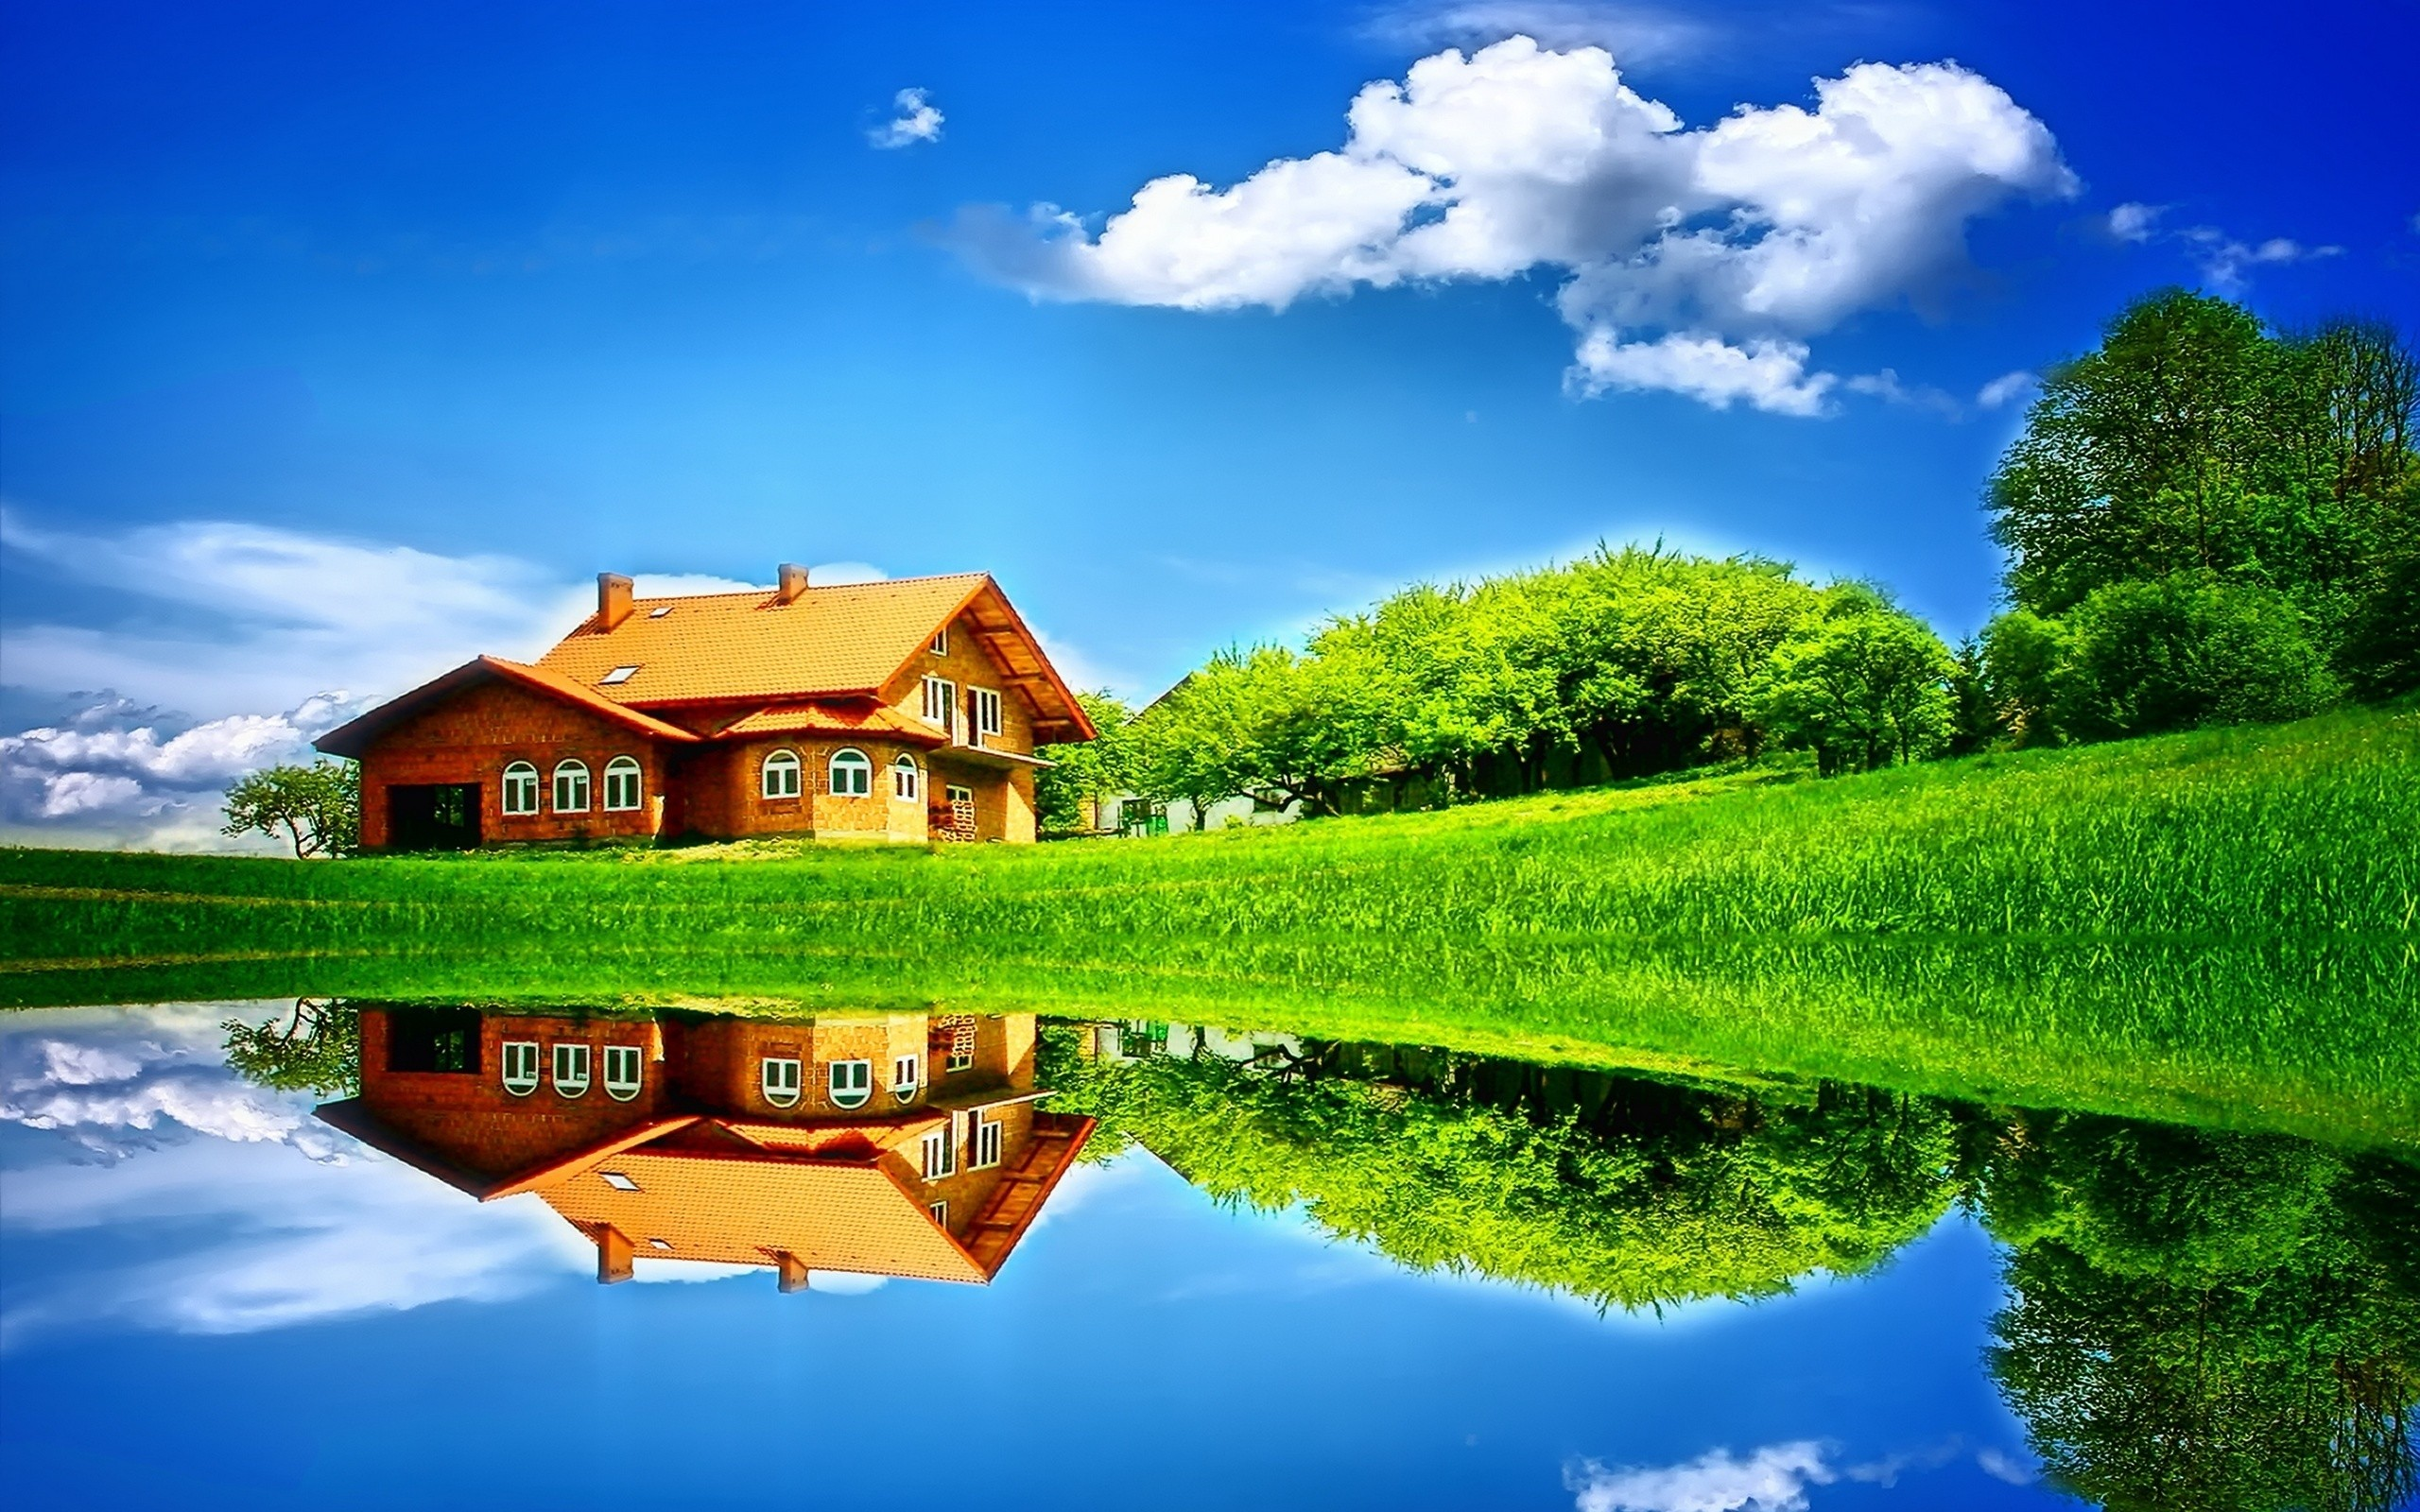 House Reflection in Water - Wallpaper #39173